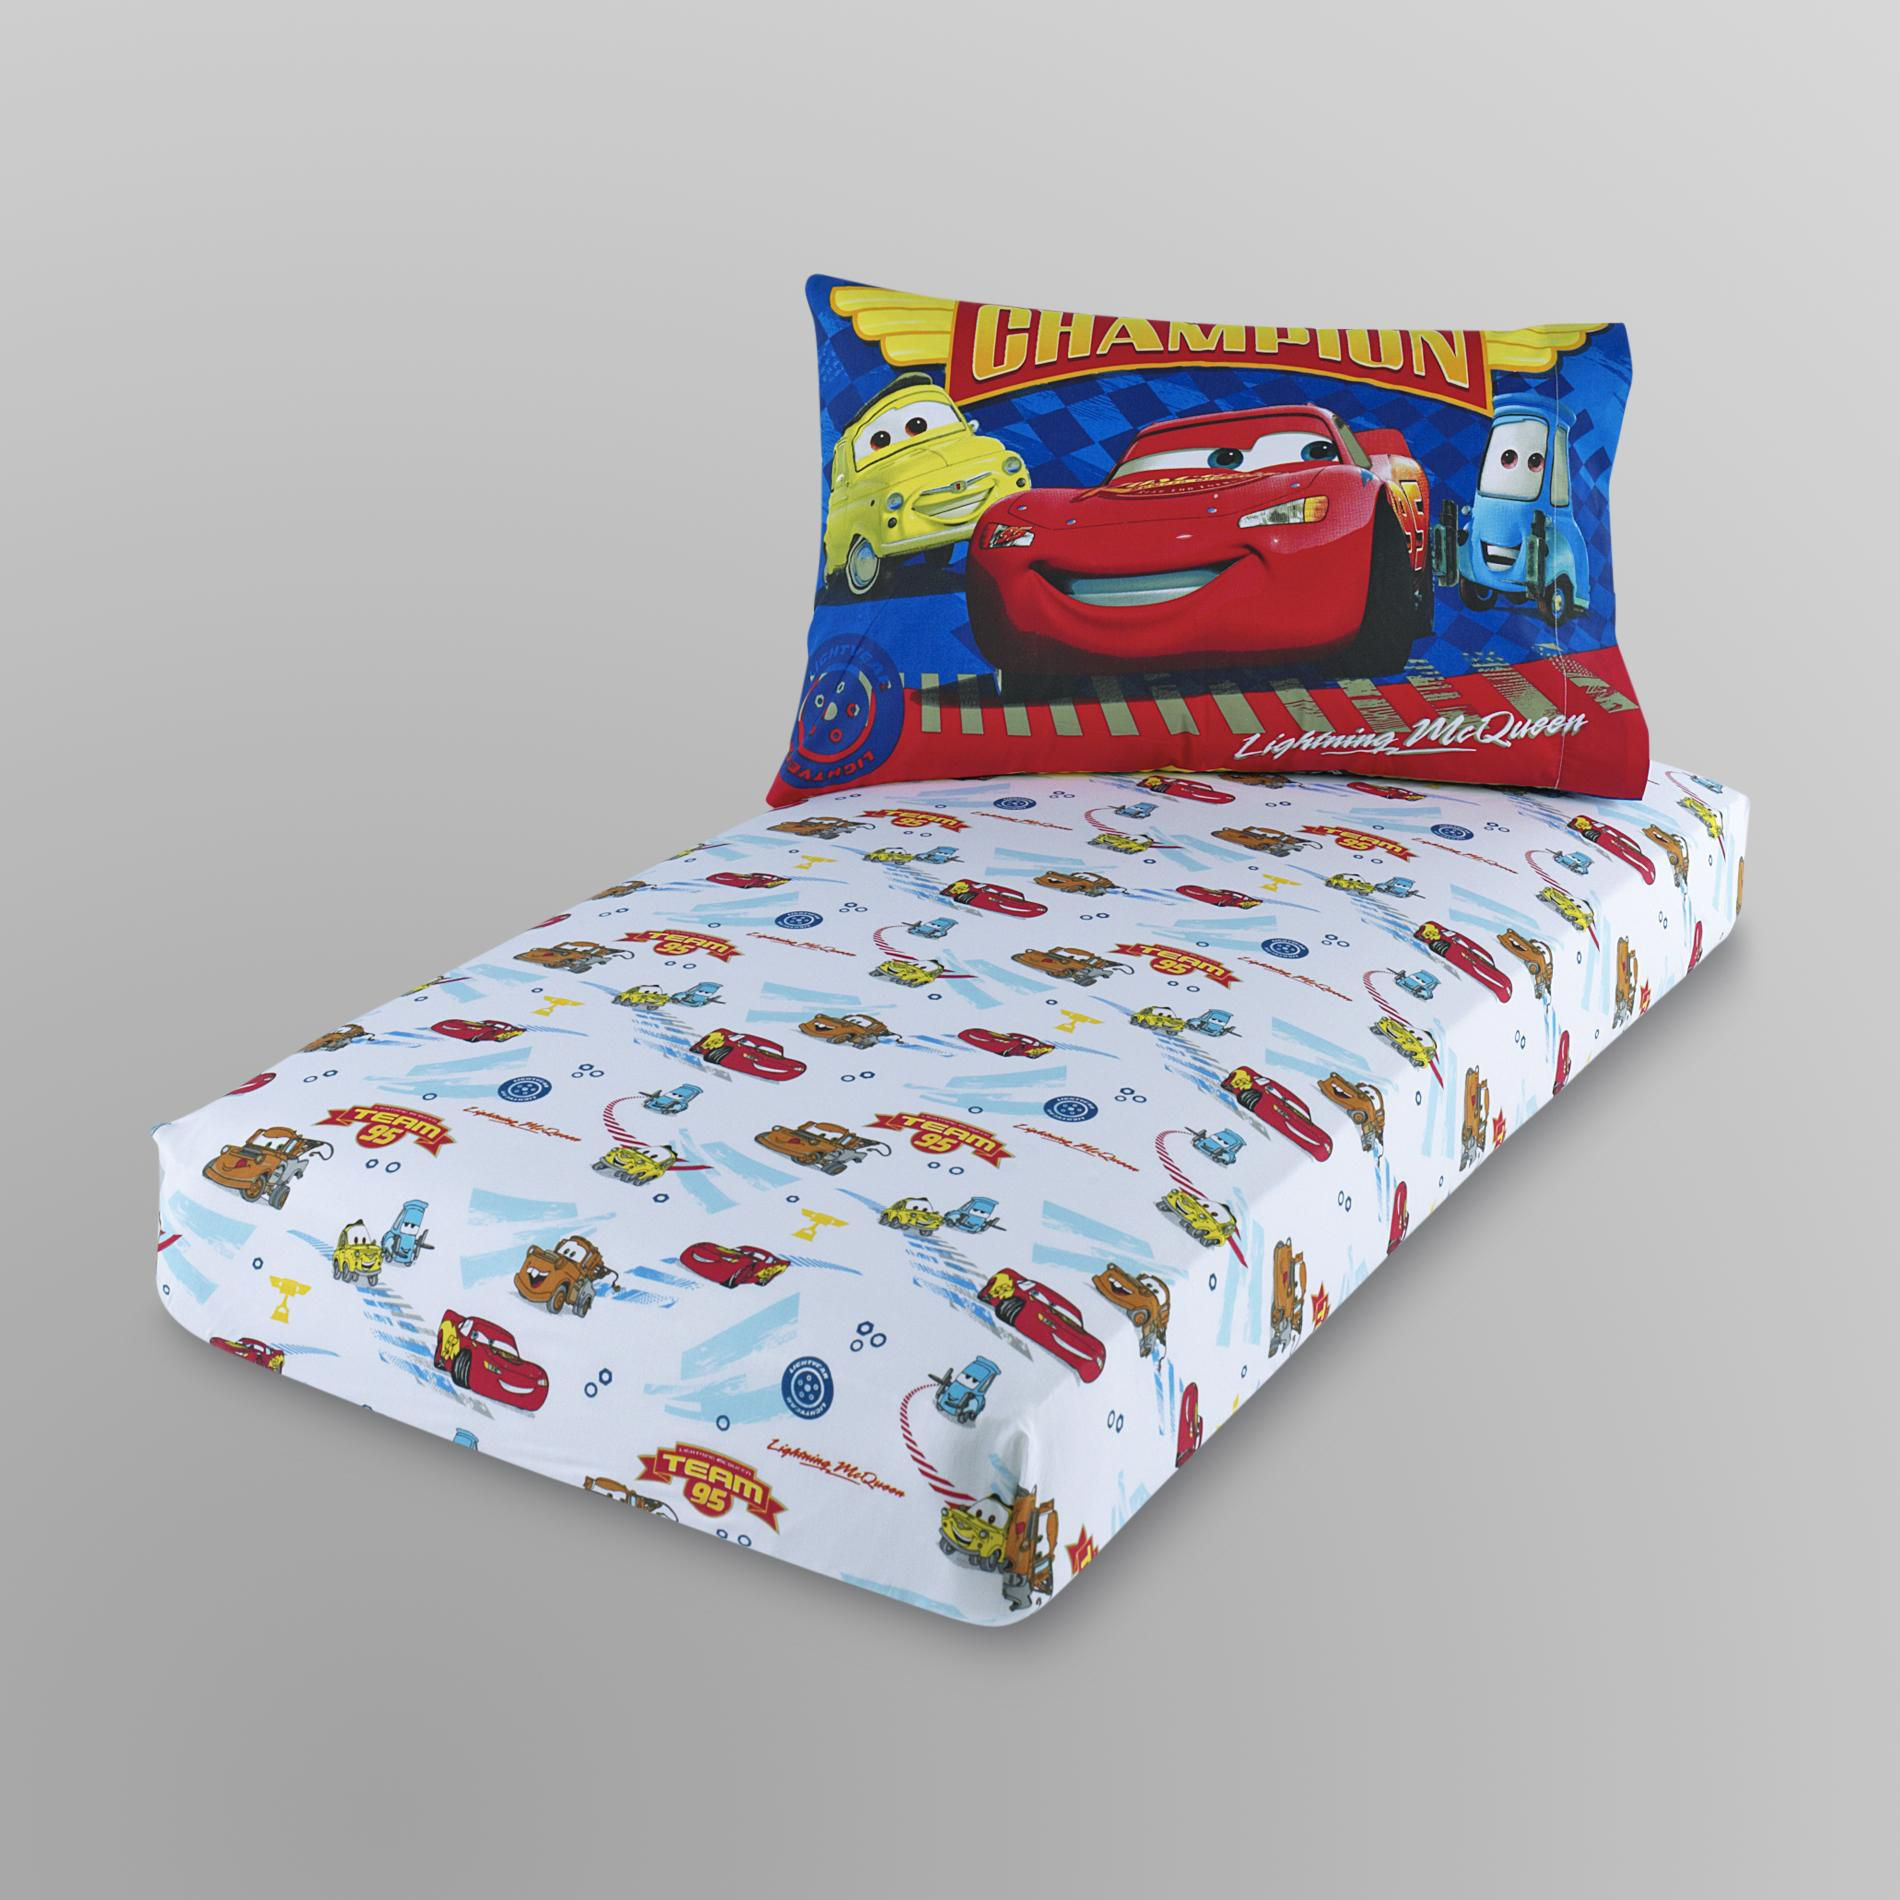 Disney Toddler Boy 39 S Pillow Case Fitted Sheet Cars - Babies R Us Infant Pillow